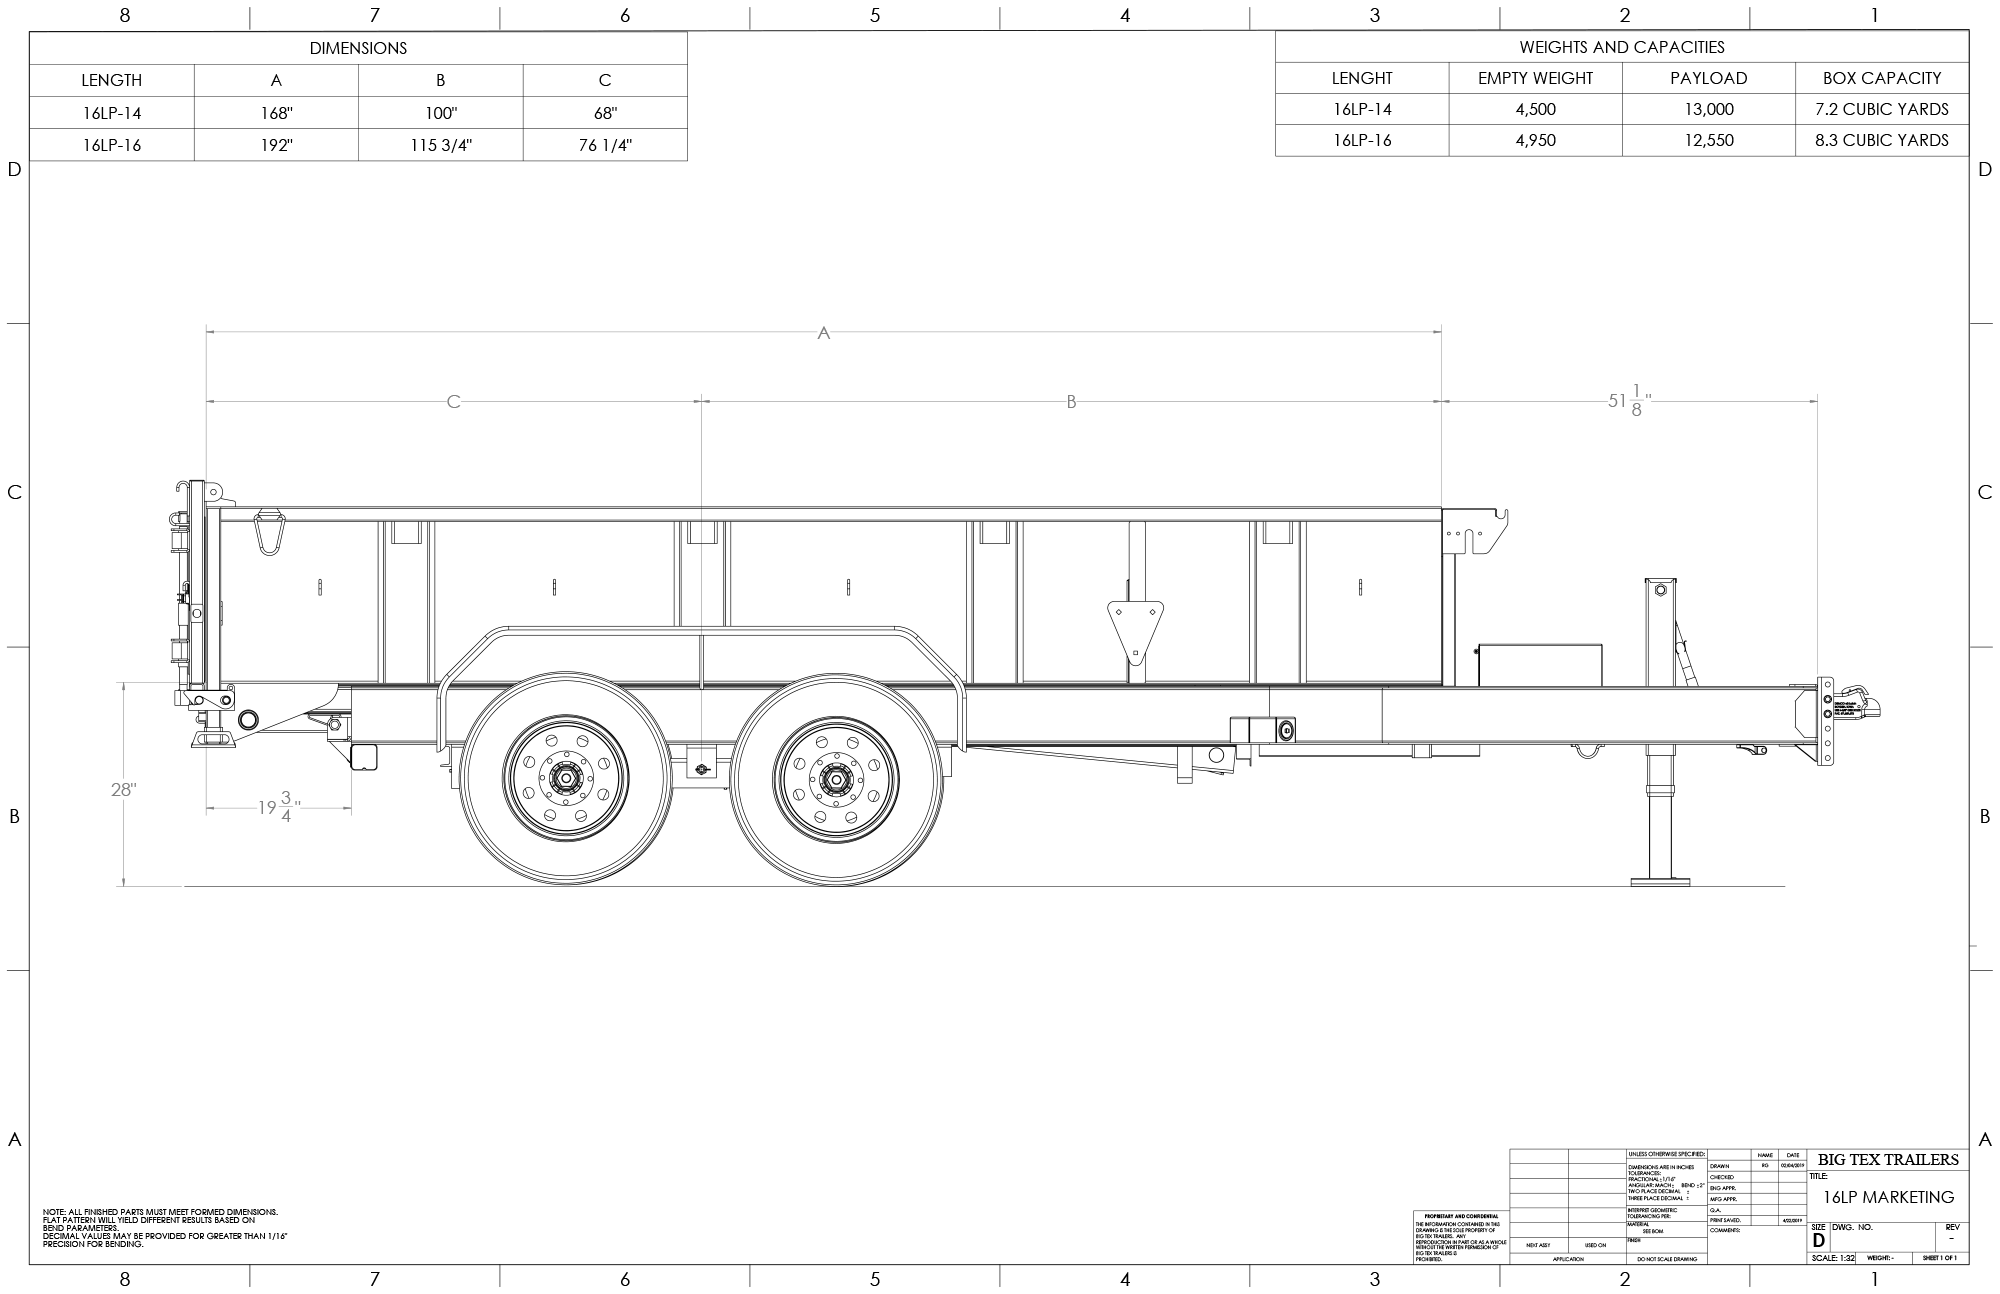 Line Drawing for 16LP